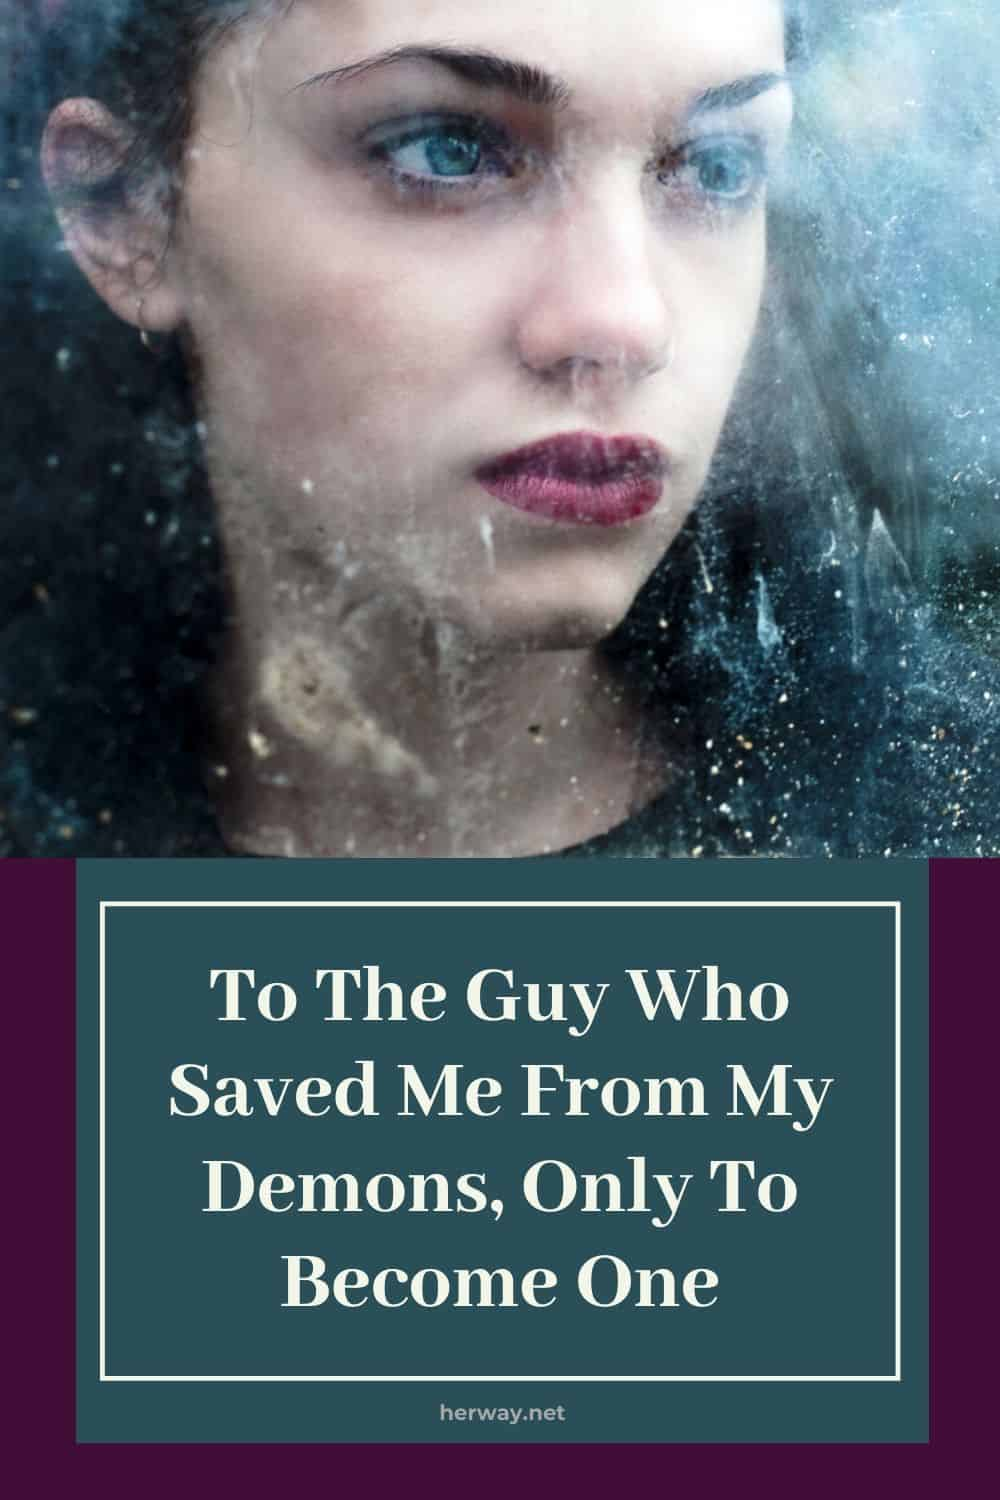 To The Guy Who Saved Me From My Demons, Only To Become One